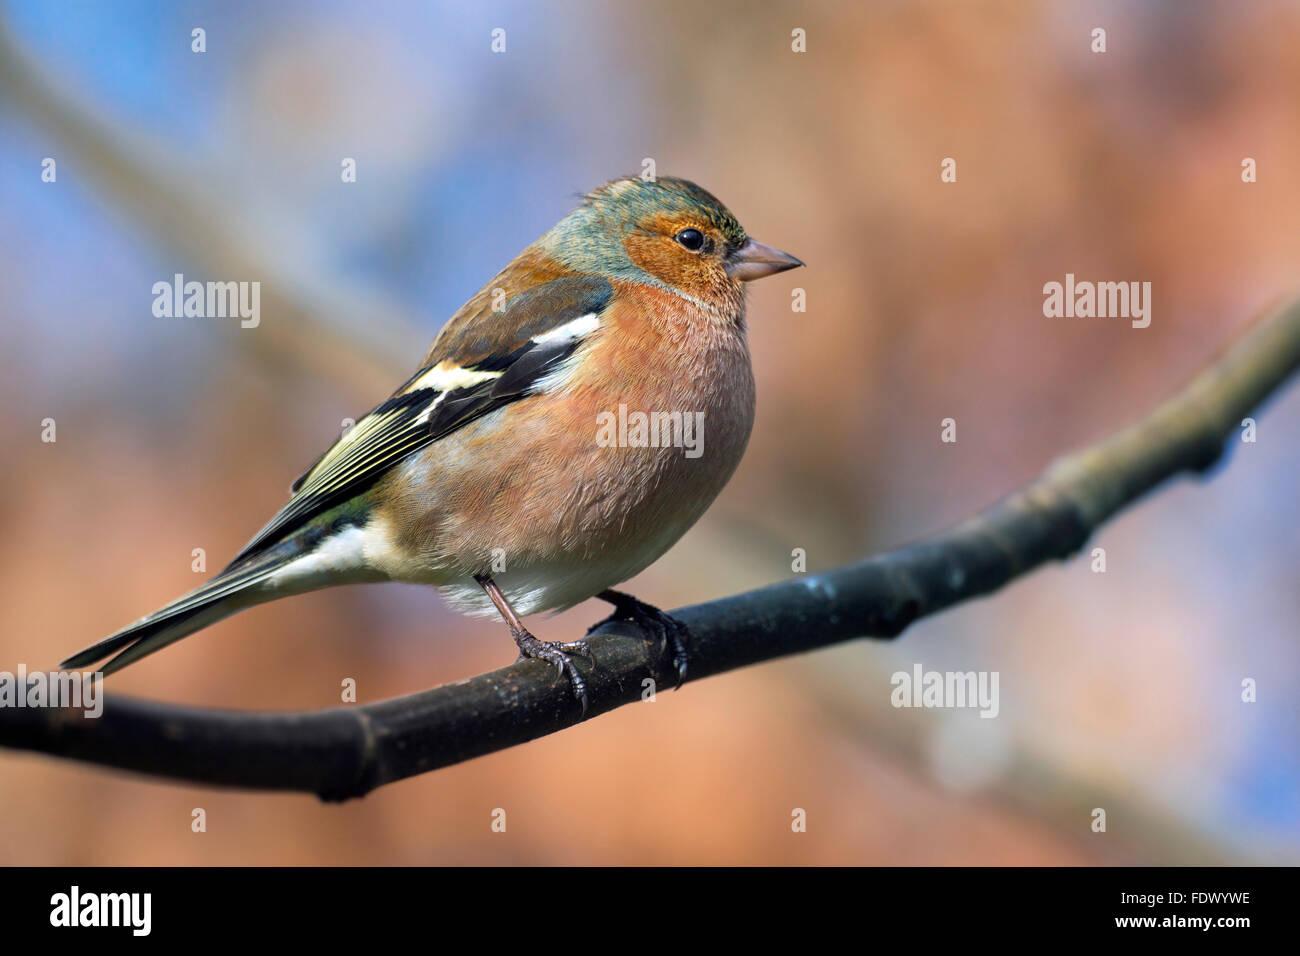 Common chaffinch (Fringilla coelebs) male perched on branch in tree - Stock Image